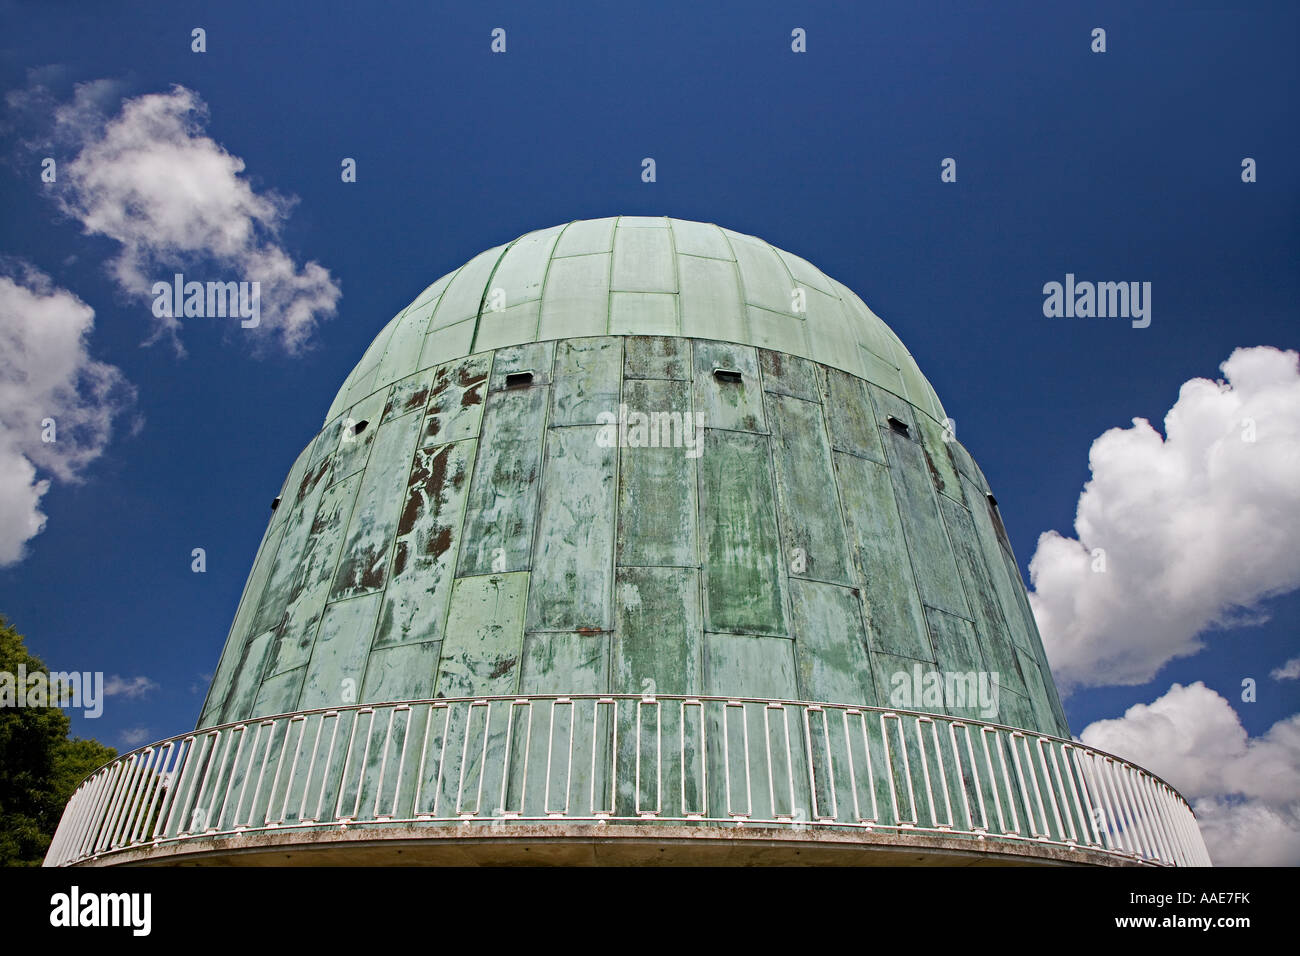 Science observatory, dome, interplanetary, space, exploration, galaxy, explore, Sussex, England, architecture, building. - Stock Image